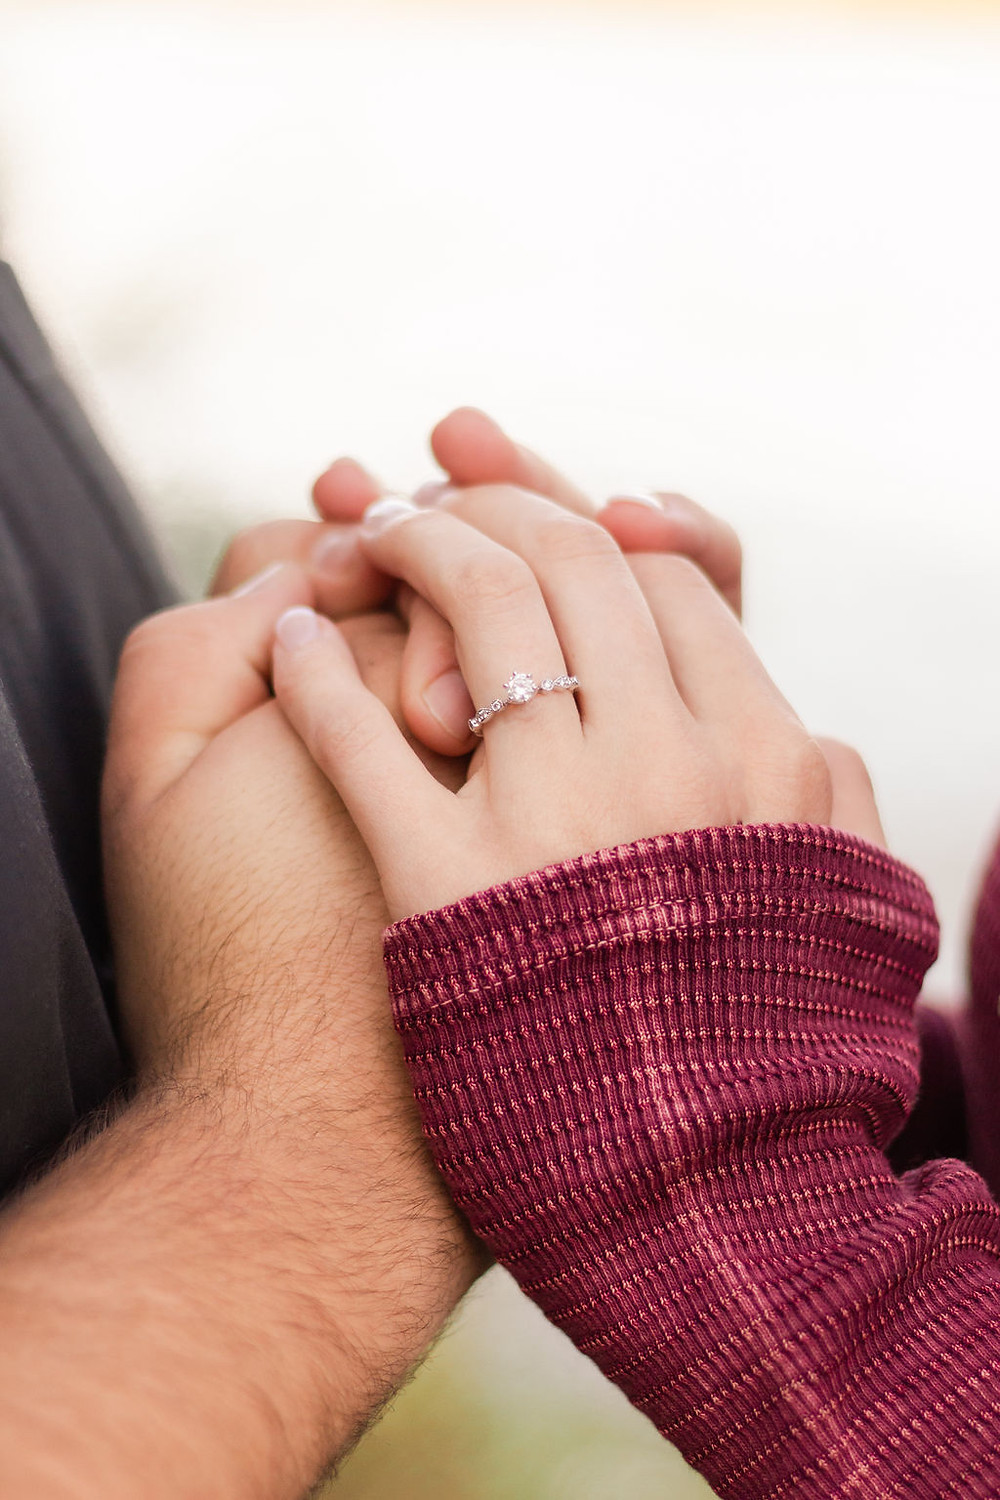 close up of an engagement ring, woman puts her hands on her fiancé's hands